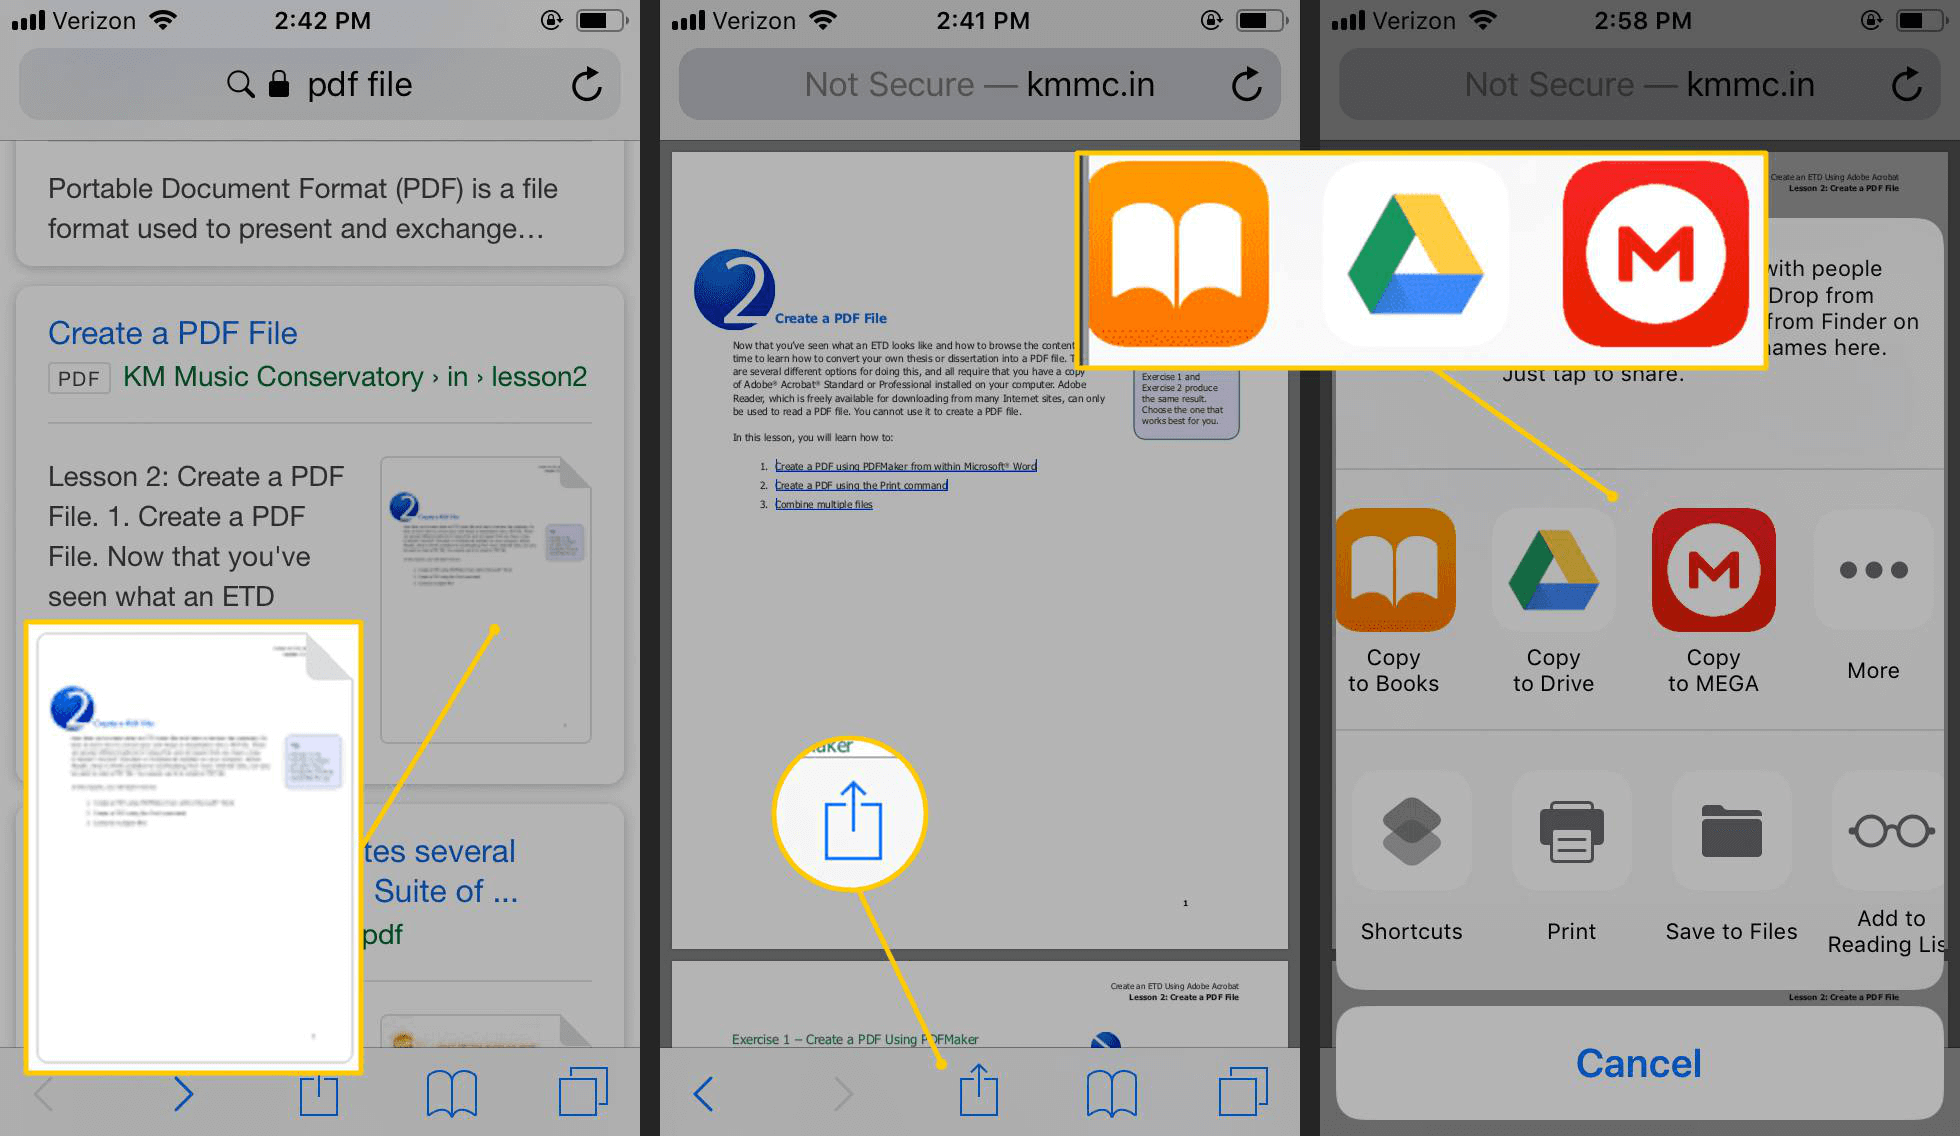 how to save pdf files to the other apps on iphone